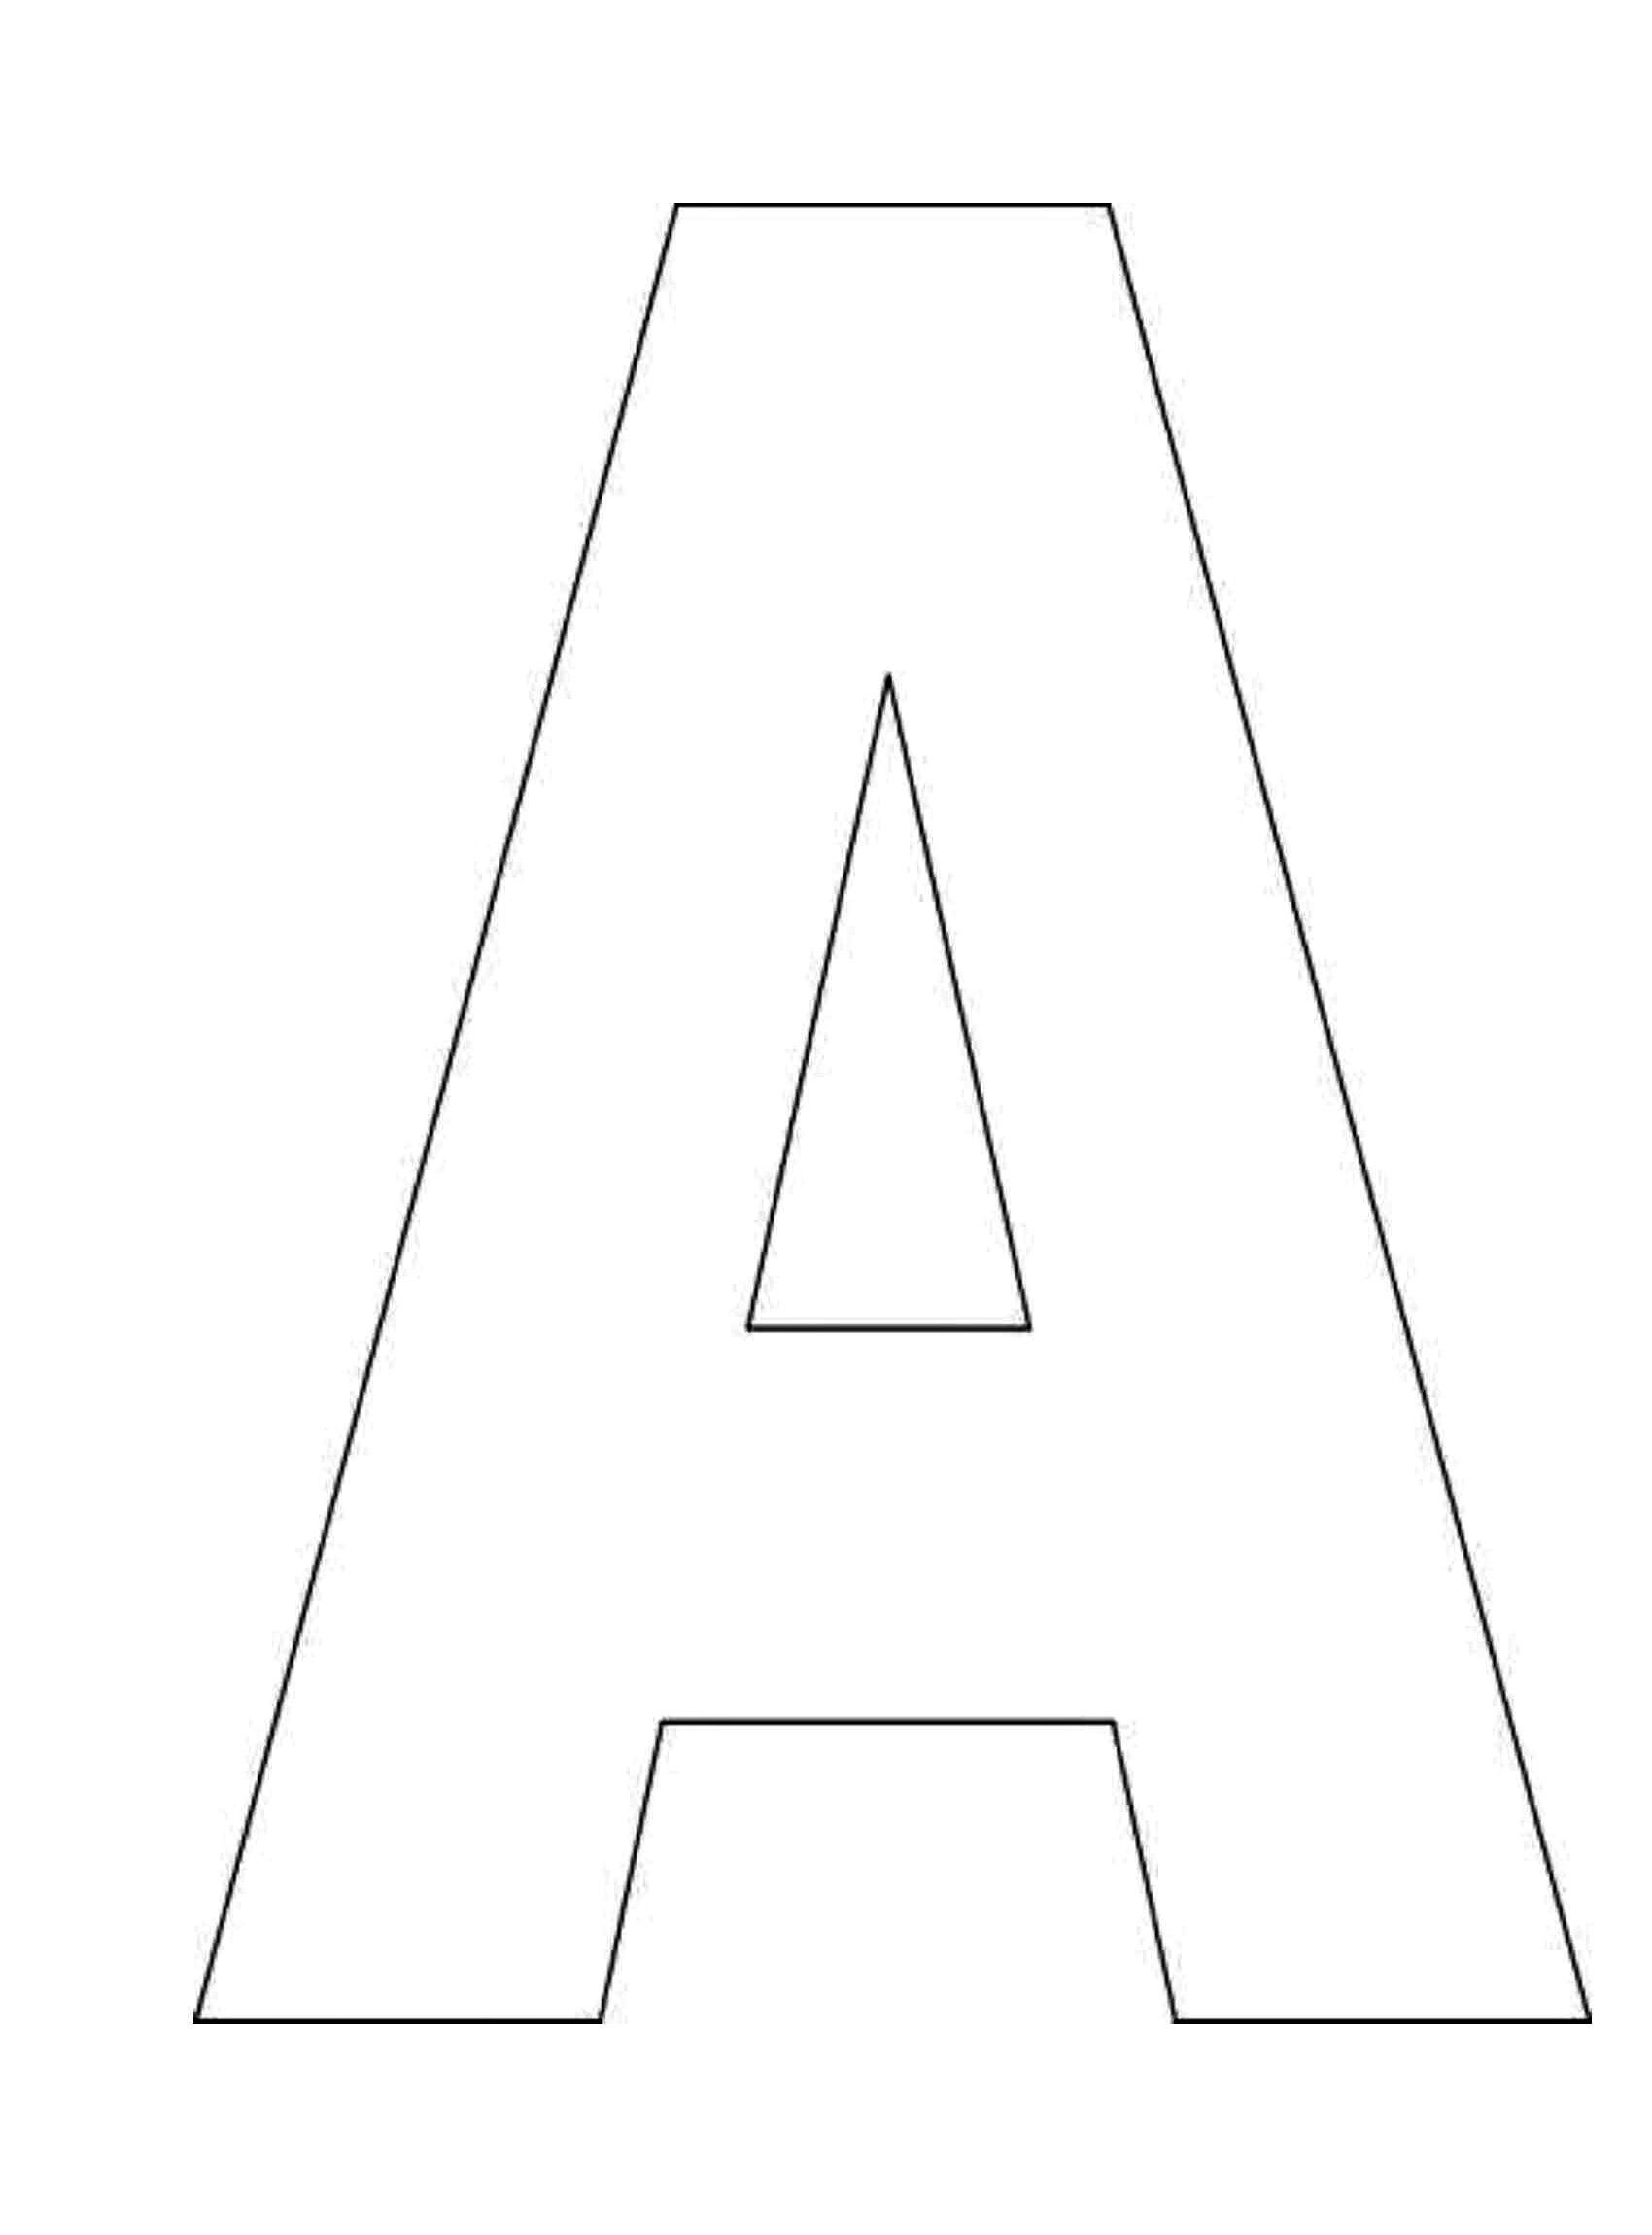 Alphabet E letters to print and cut out free - Printable Alphabet Letter Templates Free Alphabet Letter Templates To Print